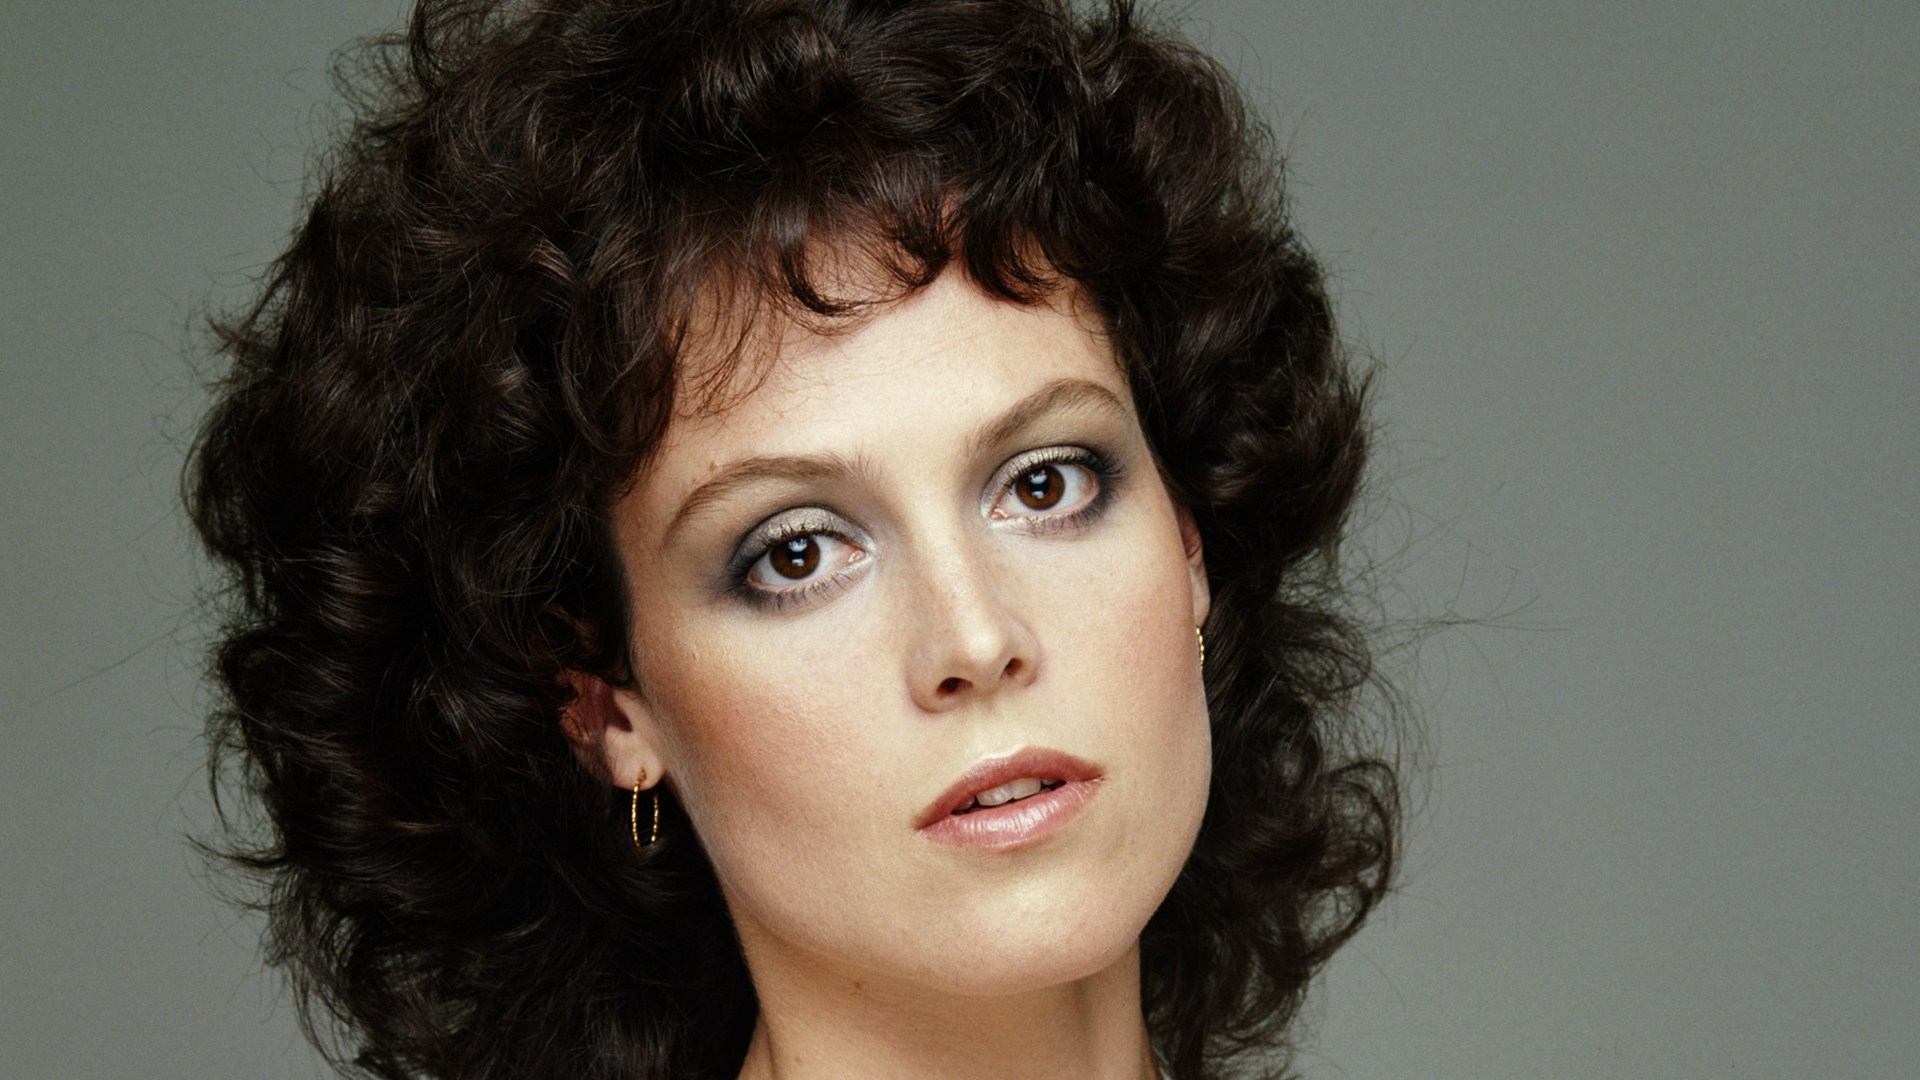 Sigourney Weaver Sexy Wallpaper. Get it now